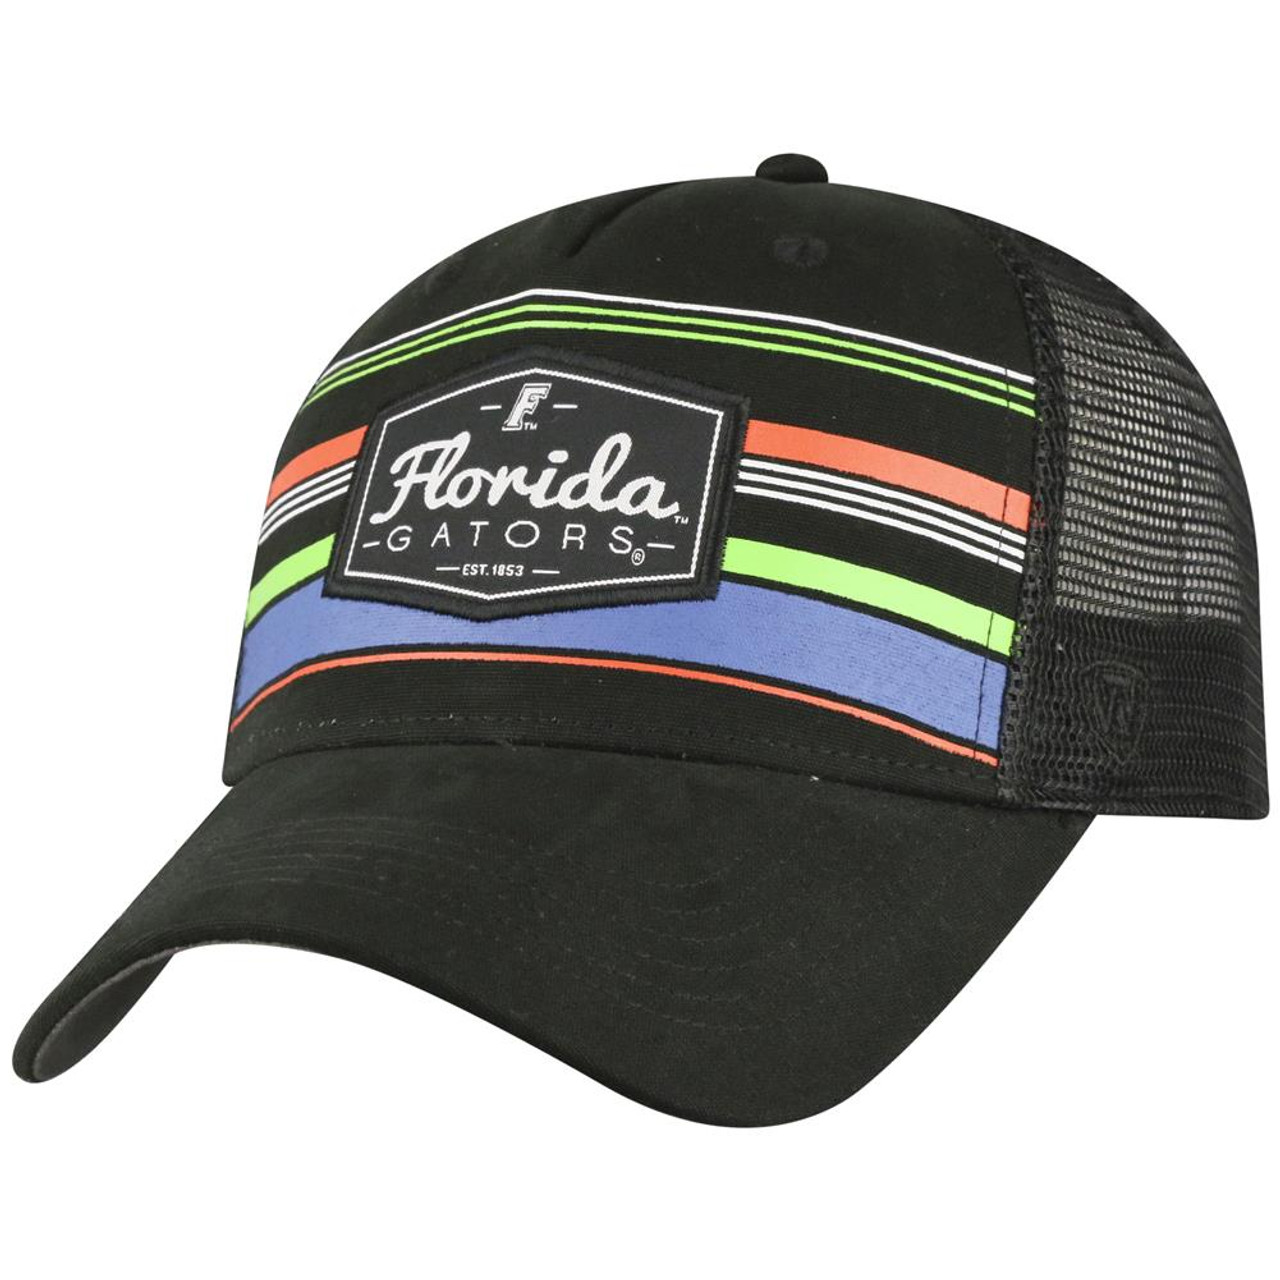 f409cc67ab7b73 University of Florida Gators Men s Trucker Hat Route Adjustable Cap